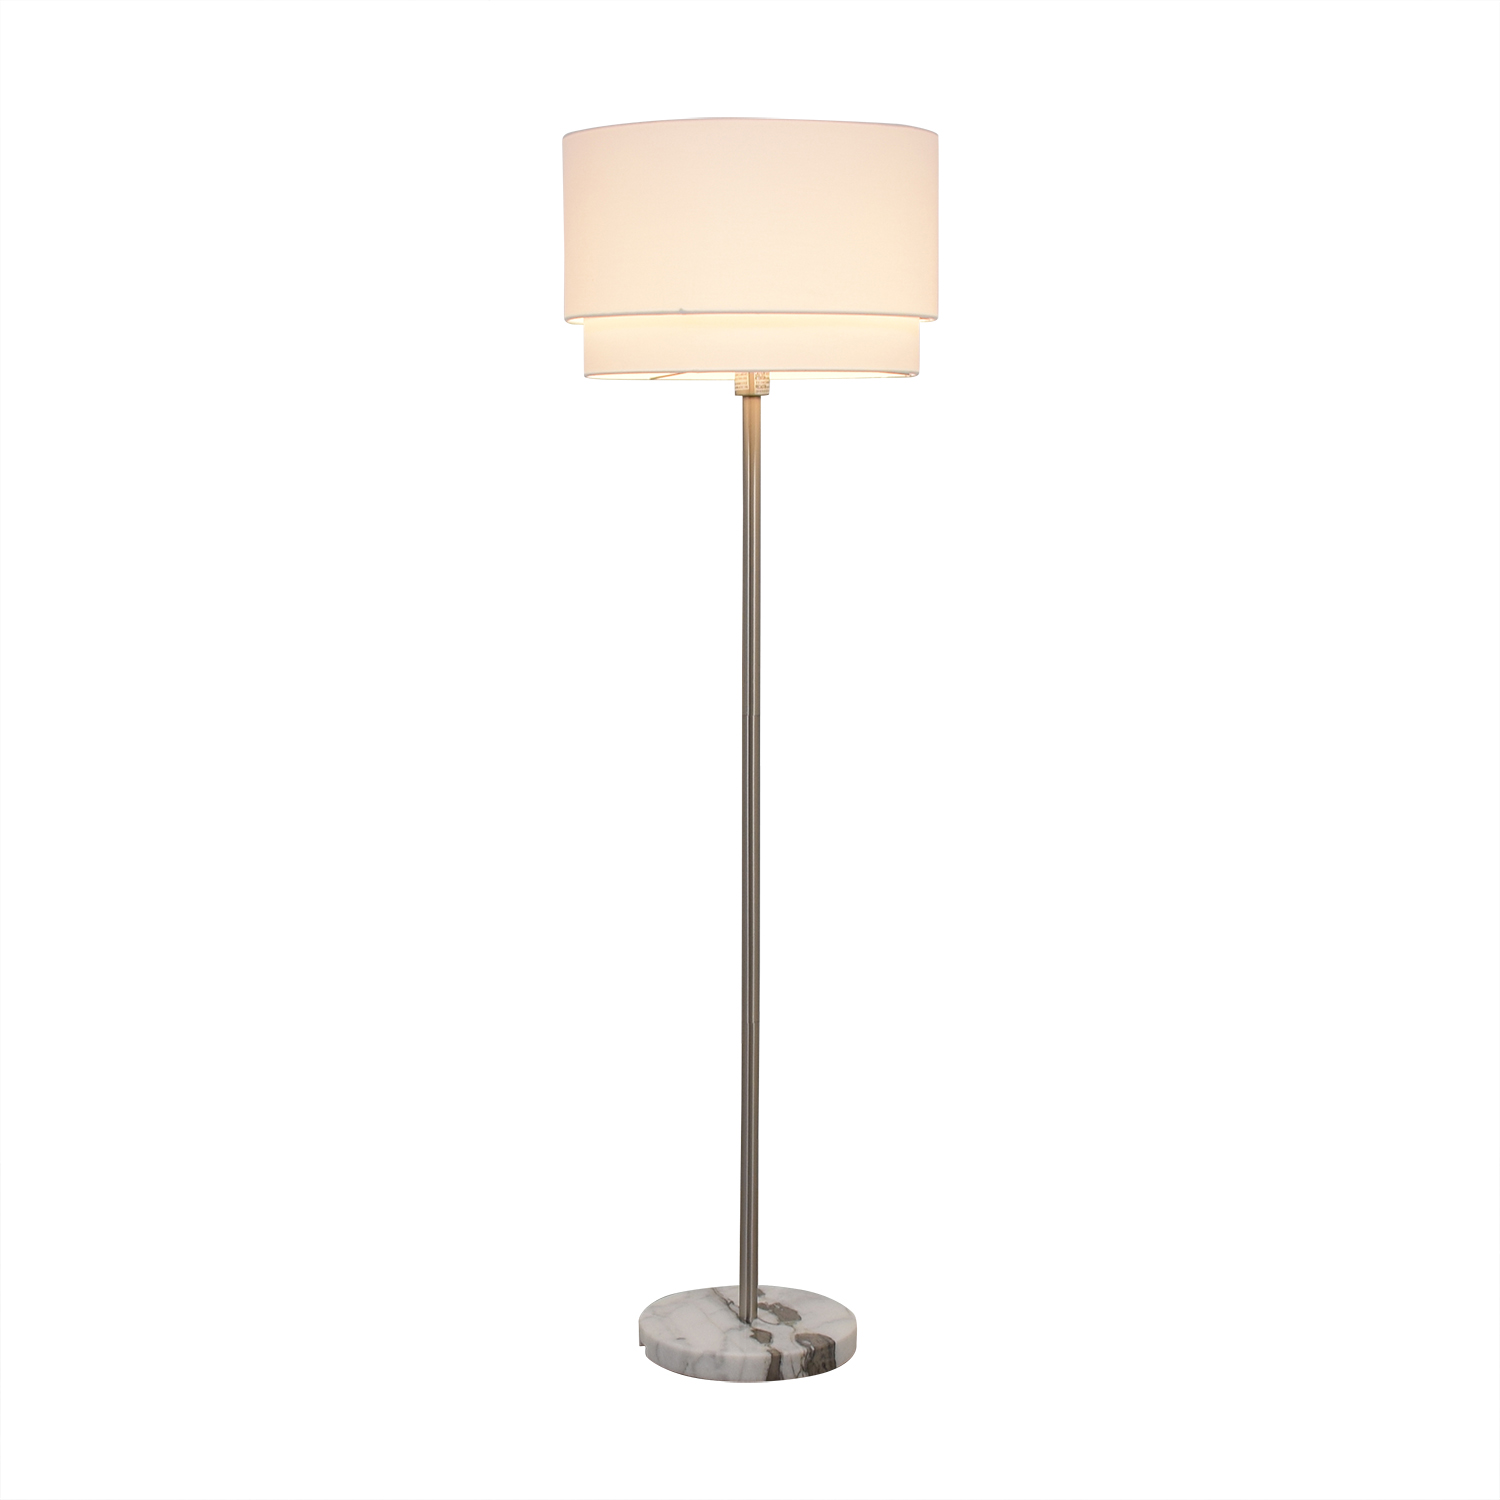 shop Crate & Barrel Meryl Vertical Floor Lamp Crate & Barrel Lamps